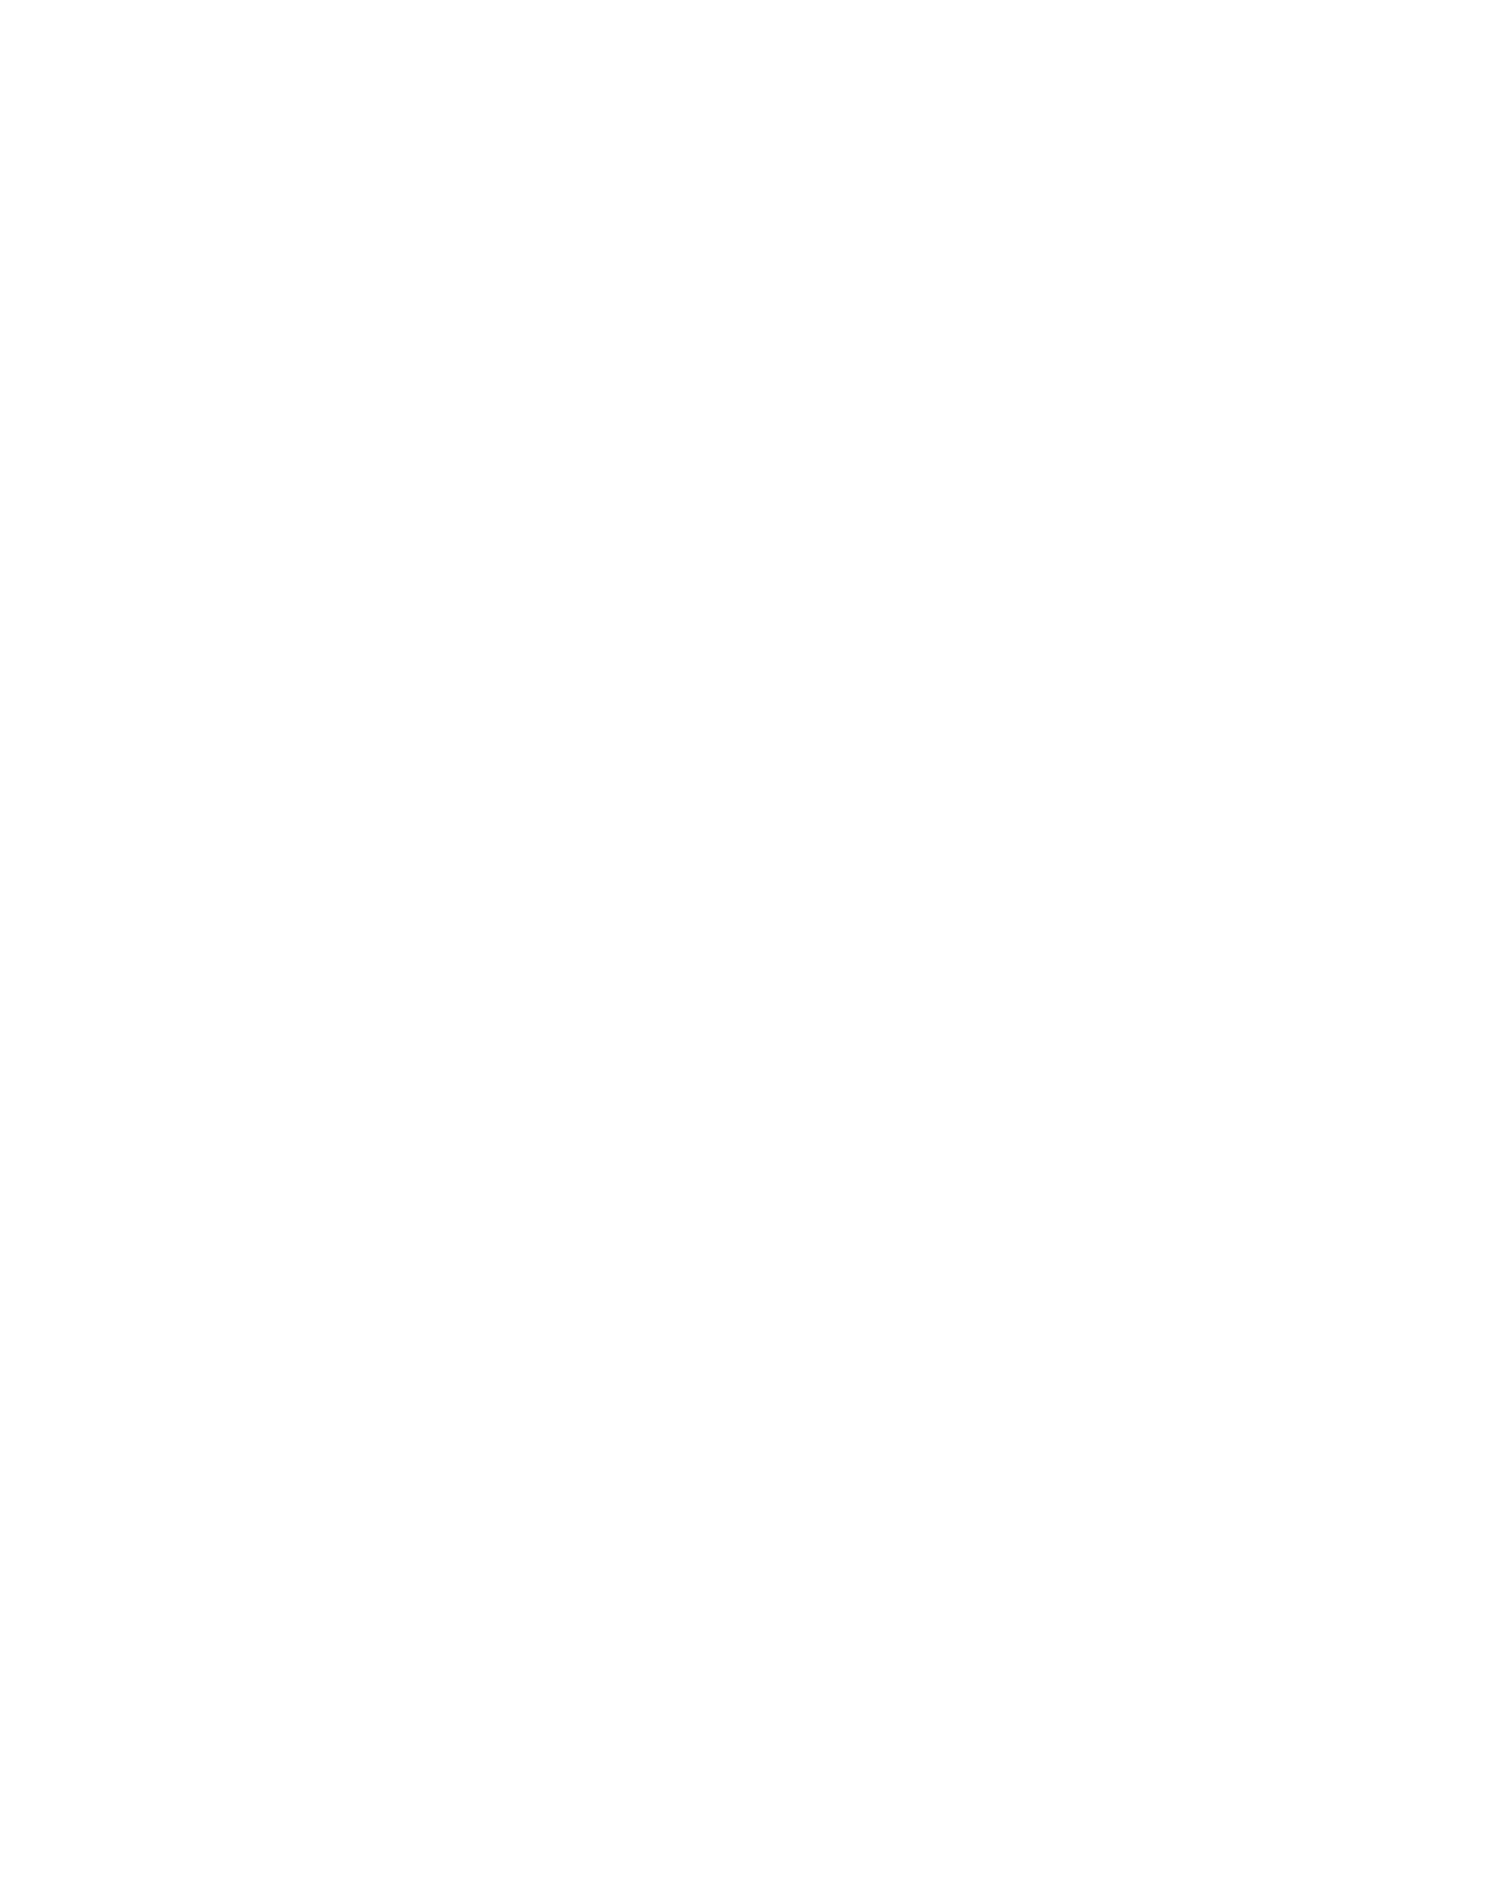 Salt Lake Climbing Festival | Rock Climbing Clinics | Guided Rock Climbing | Community Building | Stewardship